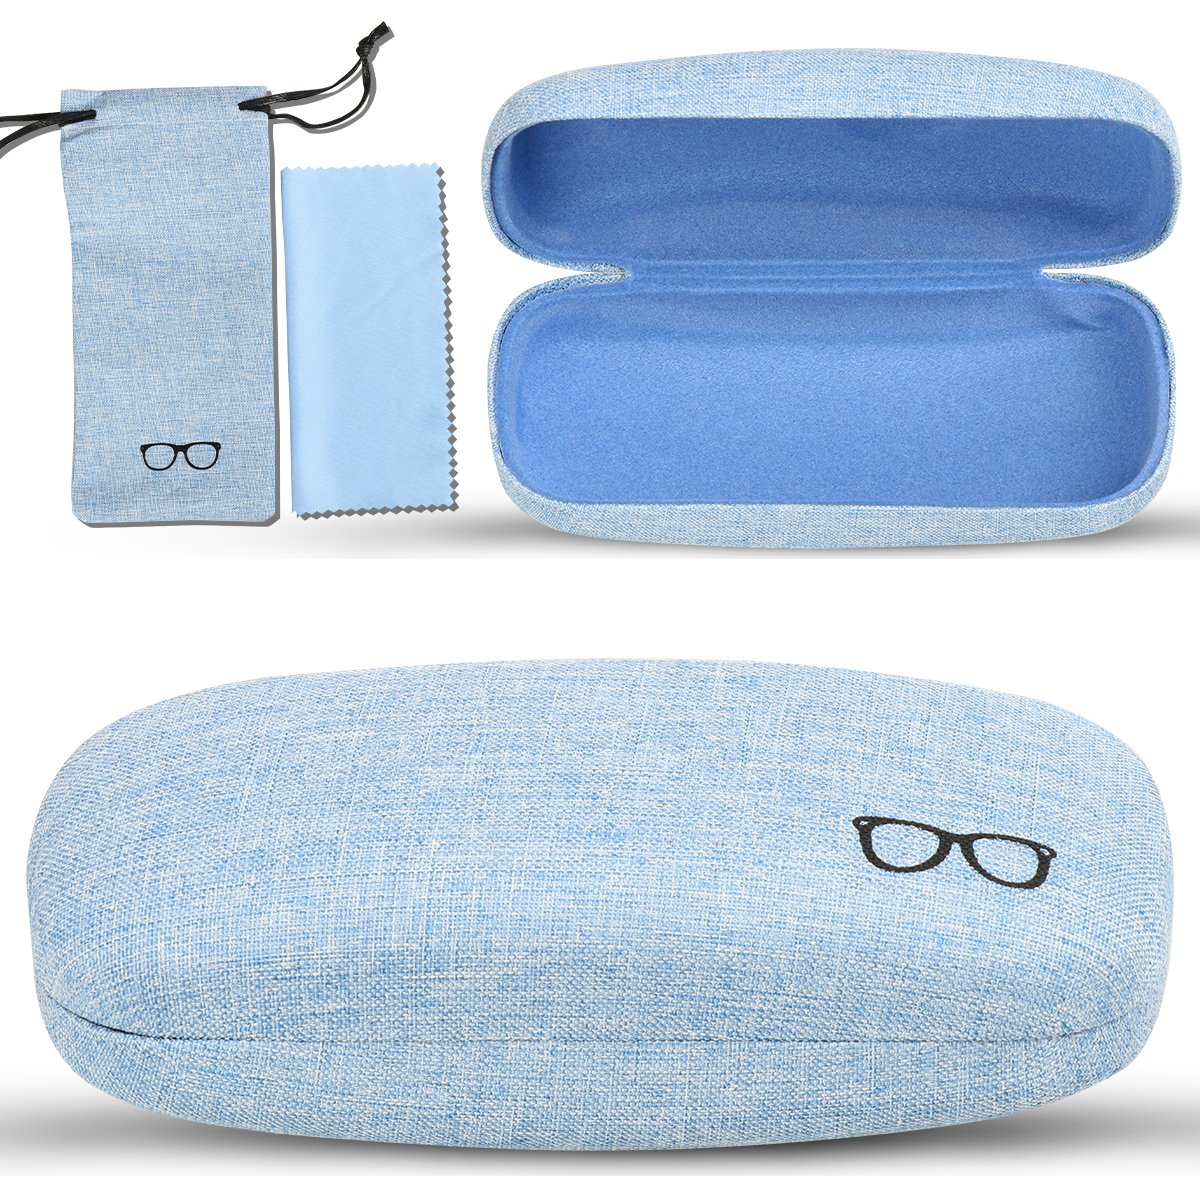 Large Size xhorizon FL1 Hard Shell Glasses Case Eyeglass Pouch /& A Large Cleaning Cloth /& A PU Leather Braid Eyeglass Chain Linen Fabric Case for Eyeglasses and Sunglasses with Bonus